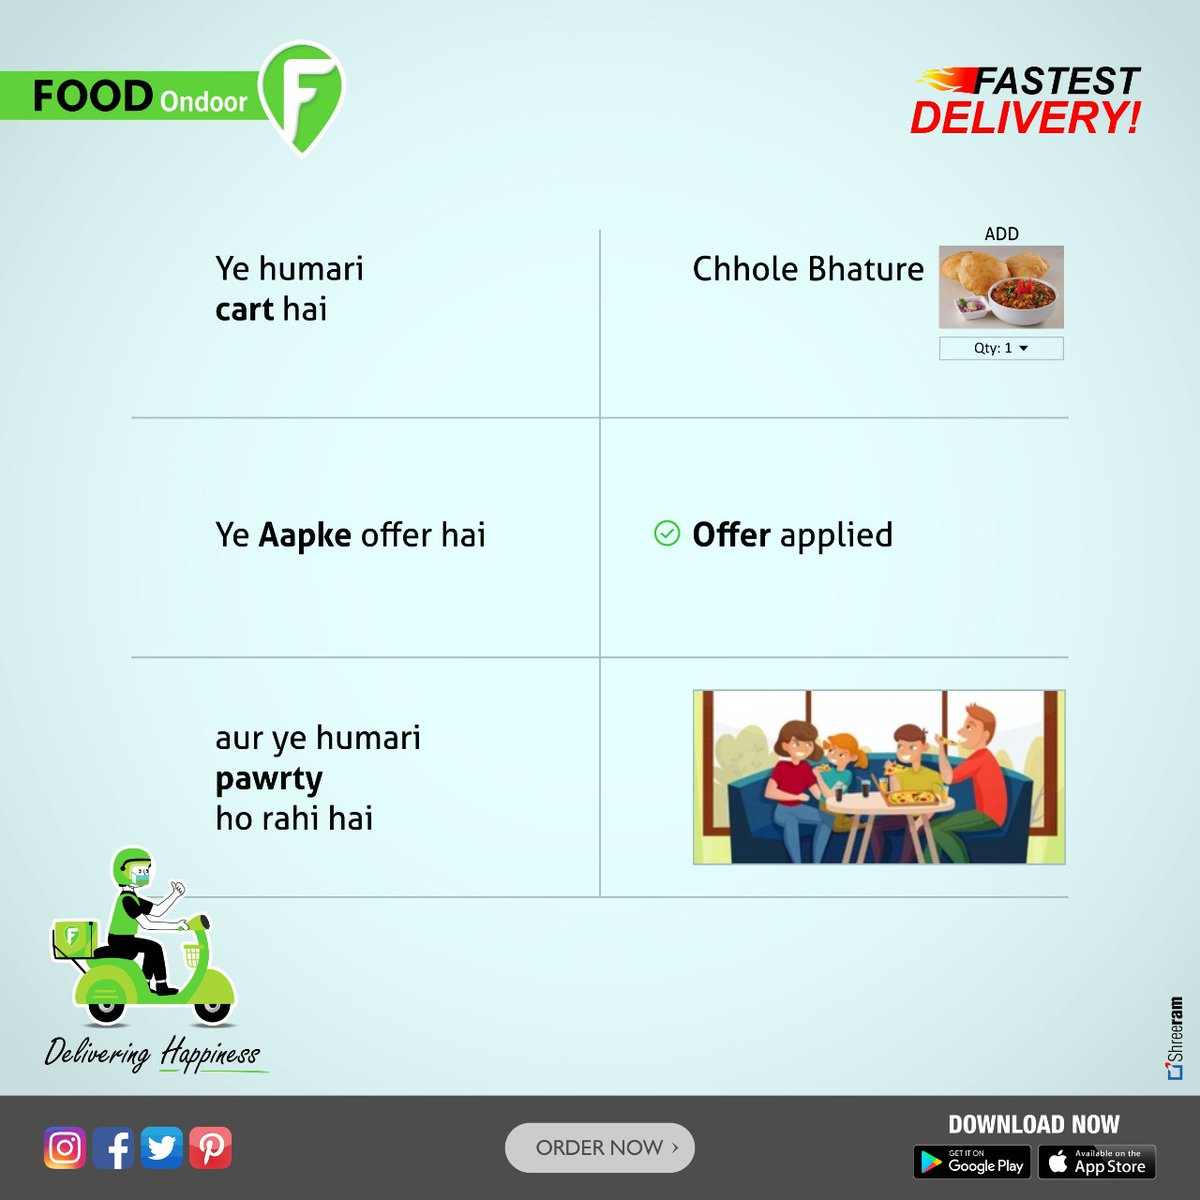 Non-stop party with Foodondoor. Grab extra discounts & fastest delivery. Order Now!! Download the app  @FoodOndoor  #foodlover #love #free #partytime #delicious #EatLocal #FastFoodies #FastFood #mondaythoughts #bhopal #DeliveringHappiness